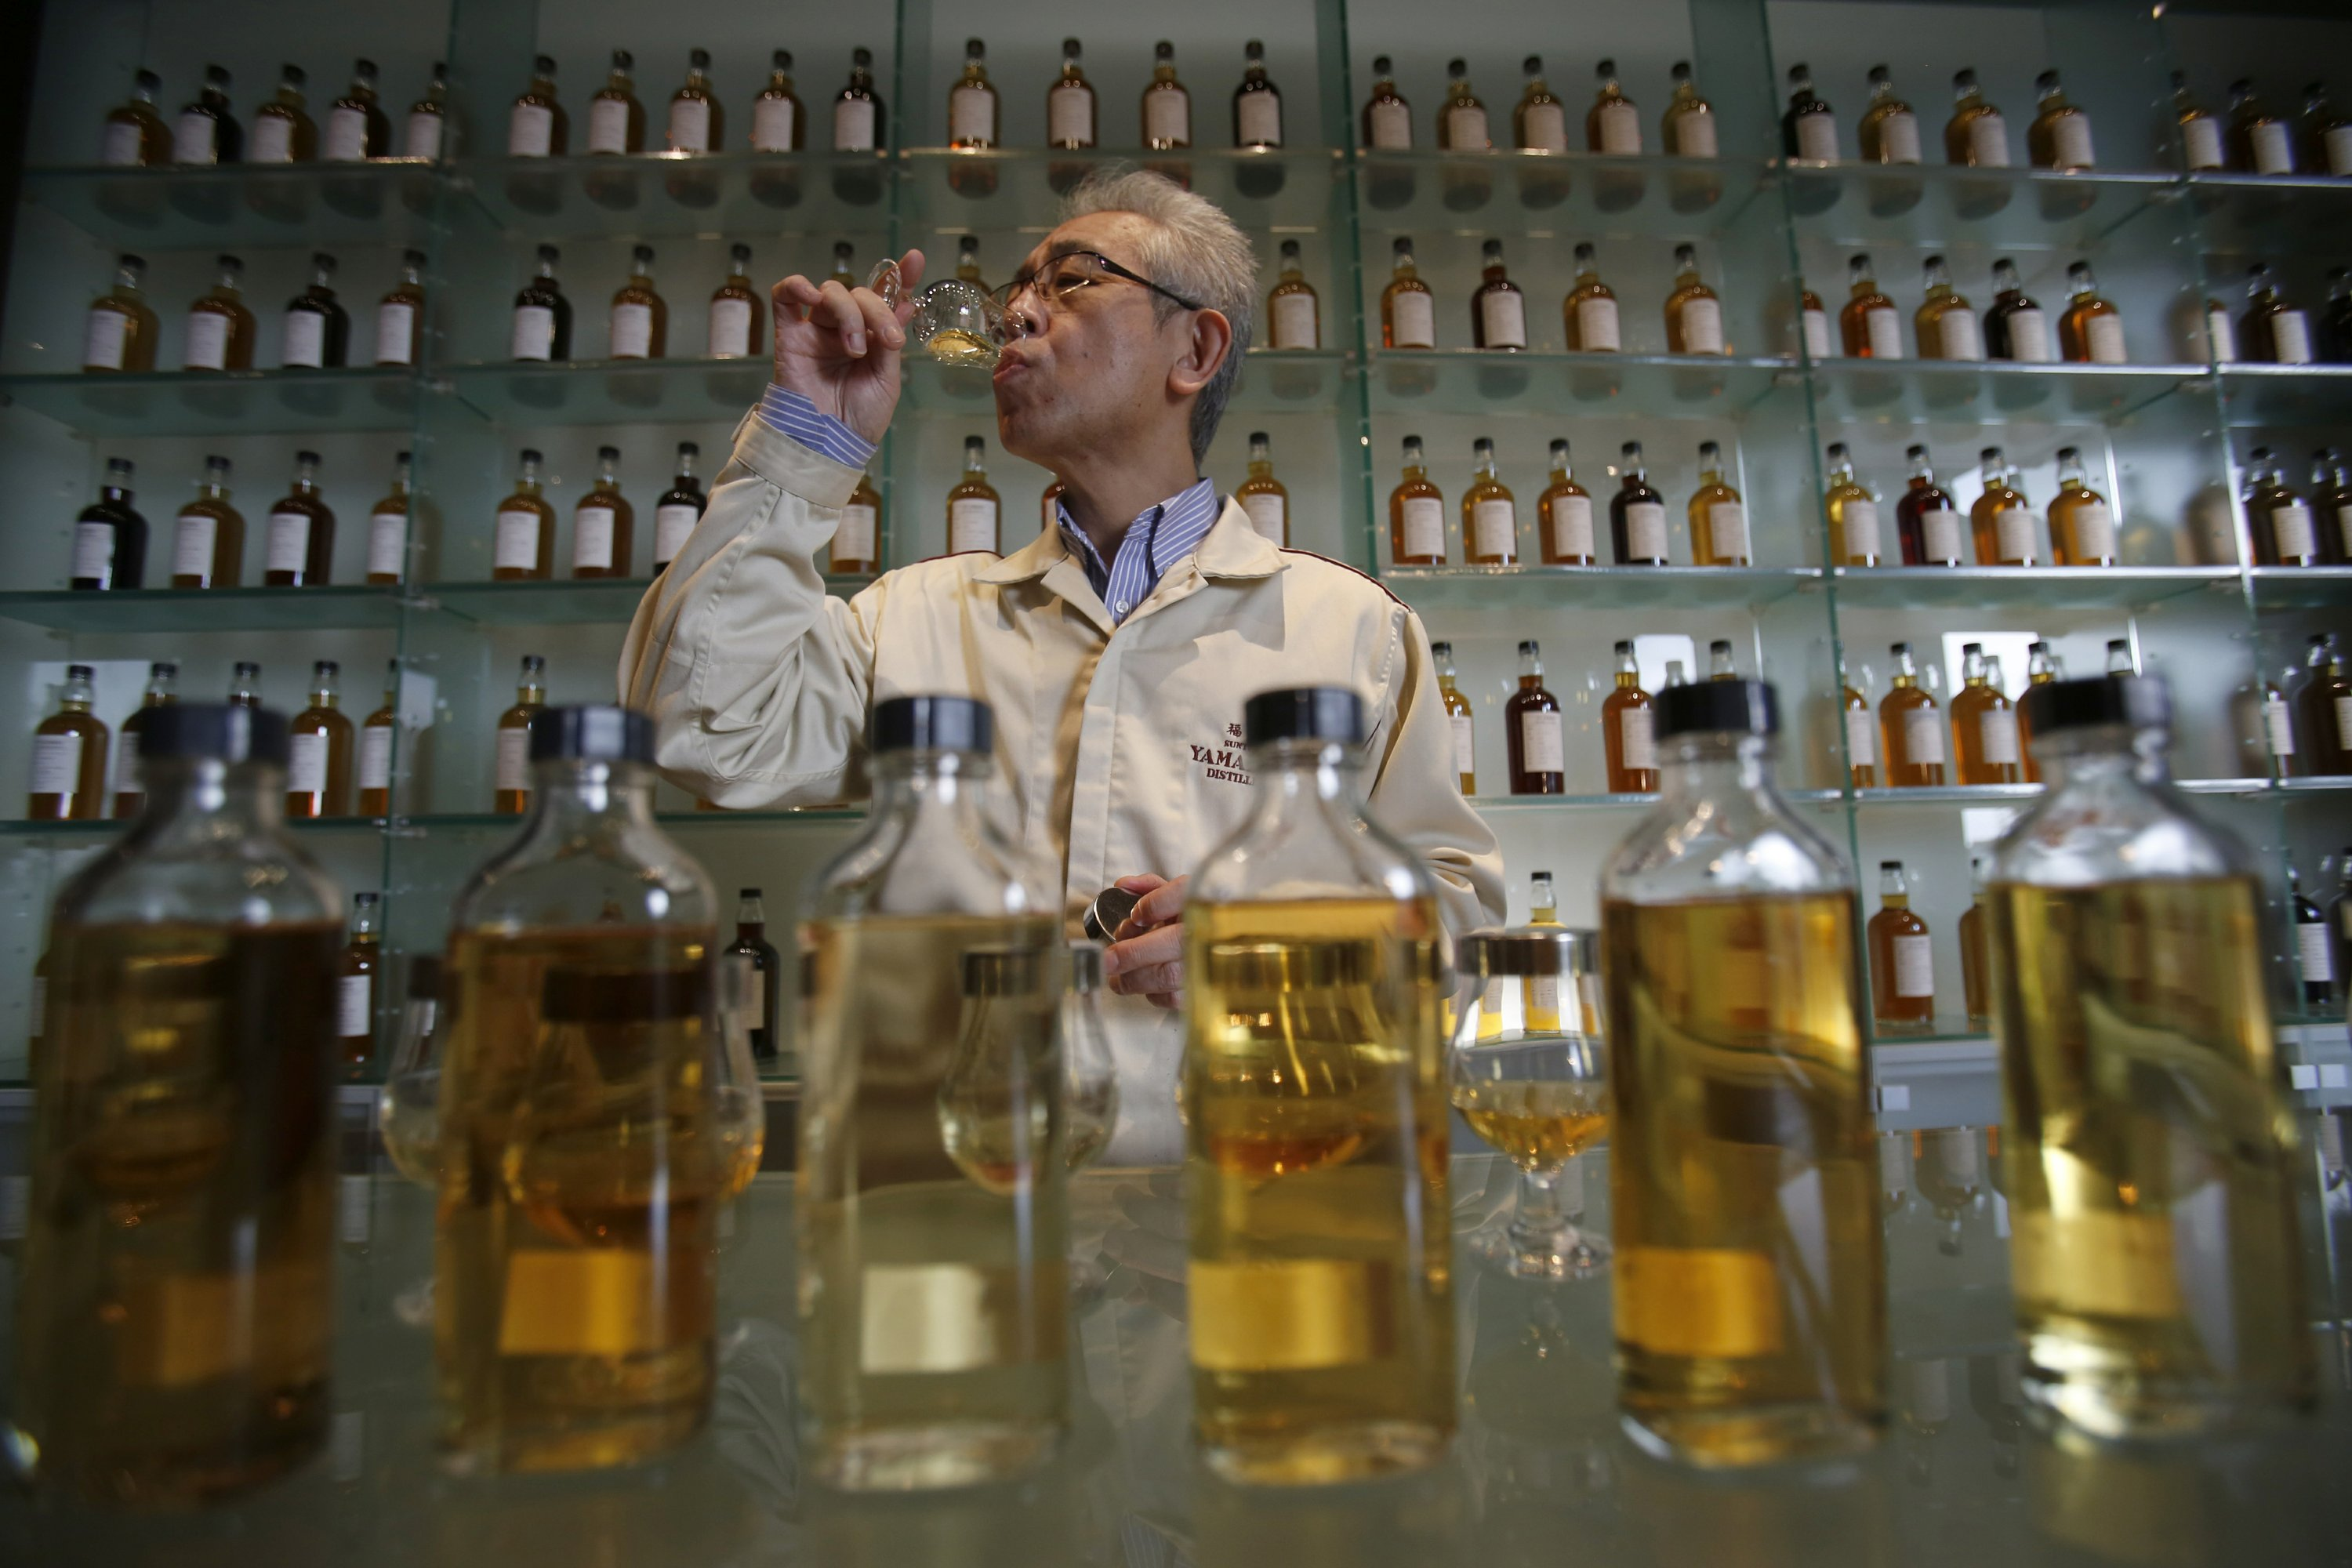 Japan one-ups Scotch with whisky, coveted around the world